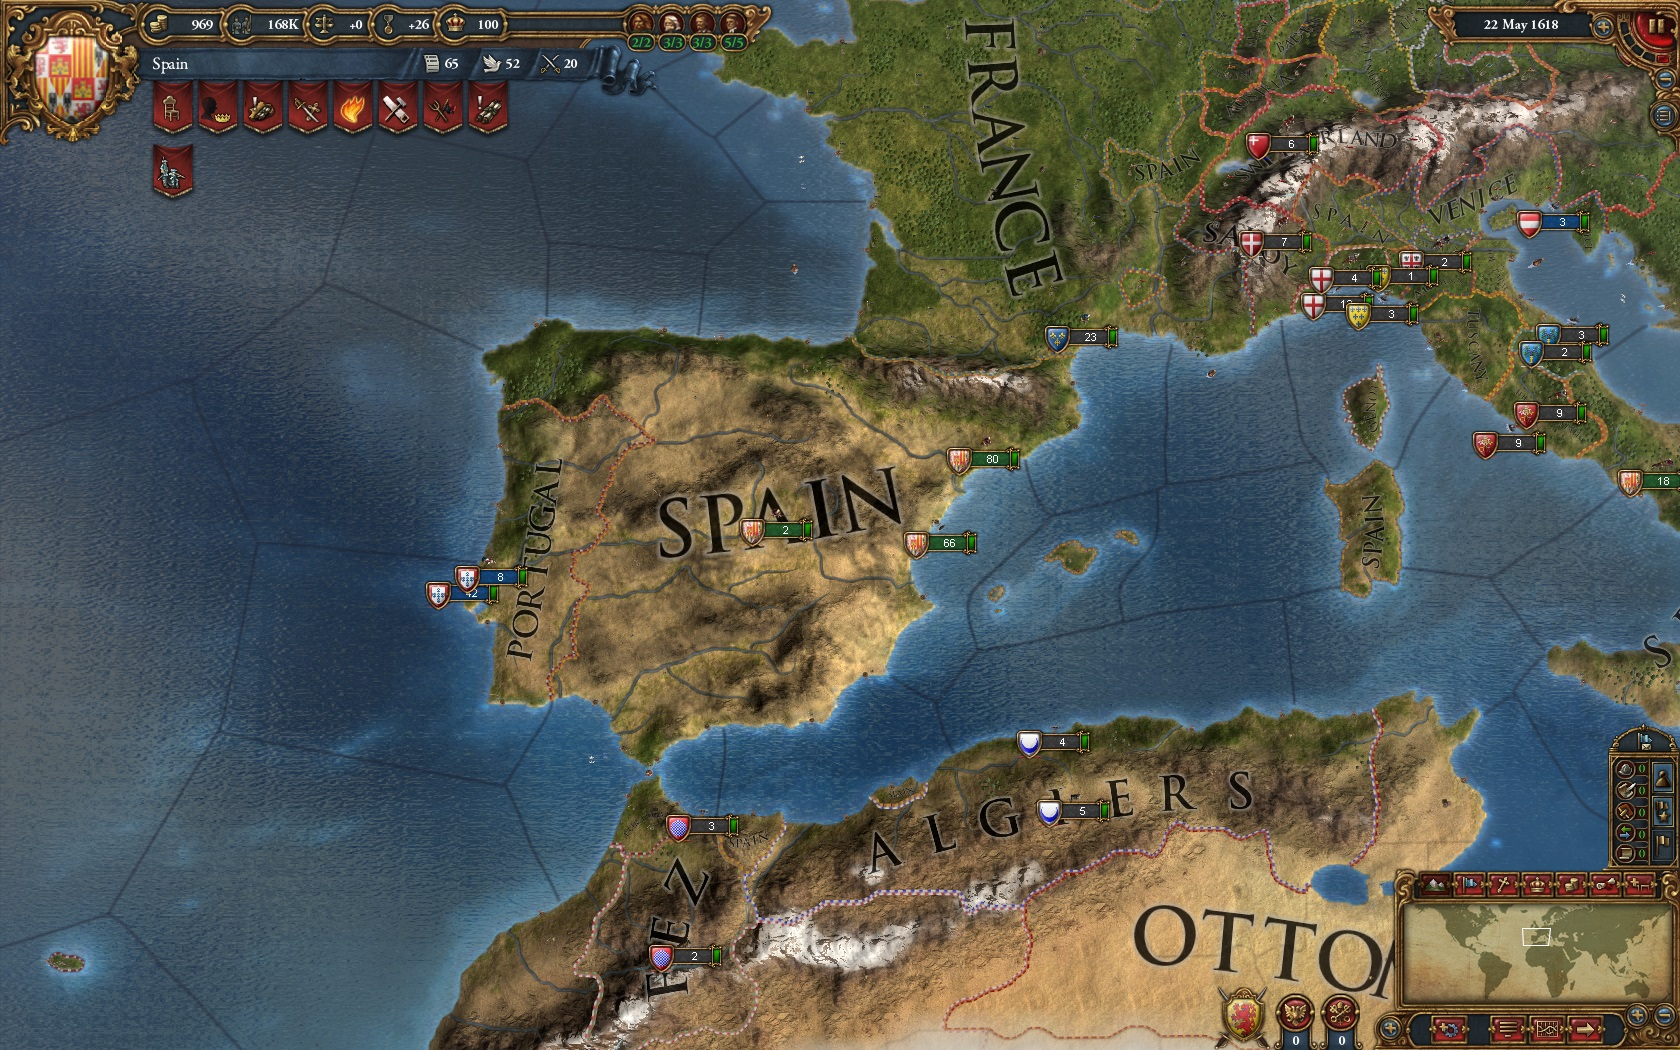 Europa Universalis IV Release Einfo Games - Countries of the world game